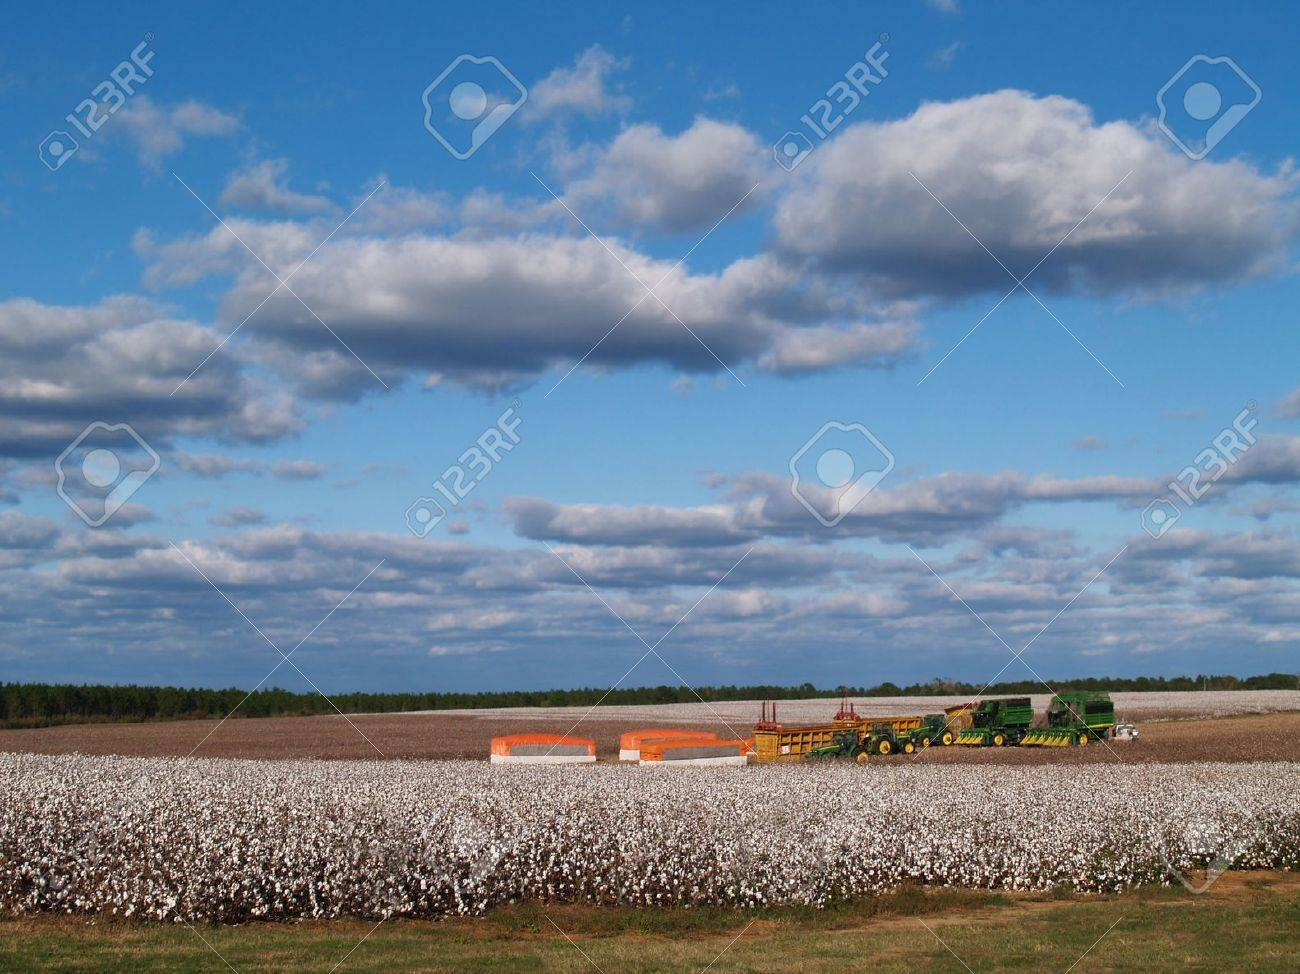 Country panorama of cotton fields at harvest time in south Georgia, USA underneath a cloudy blue sky. - 5893804